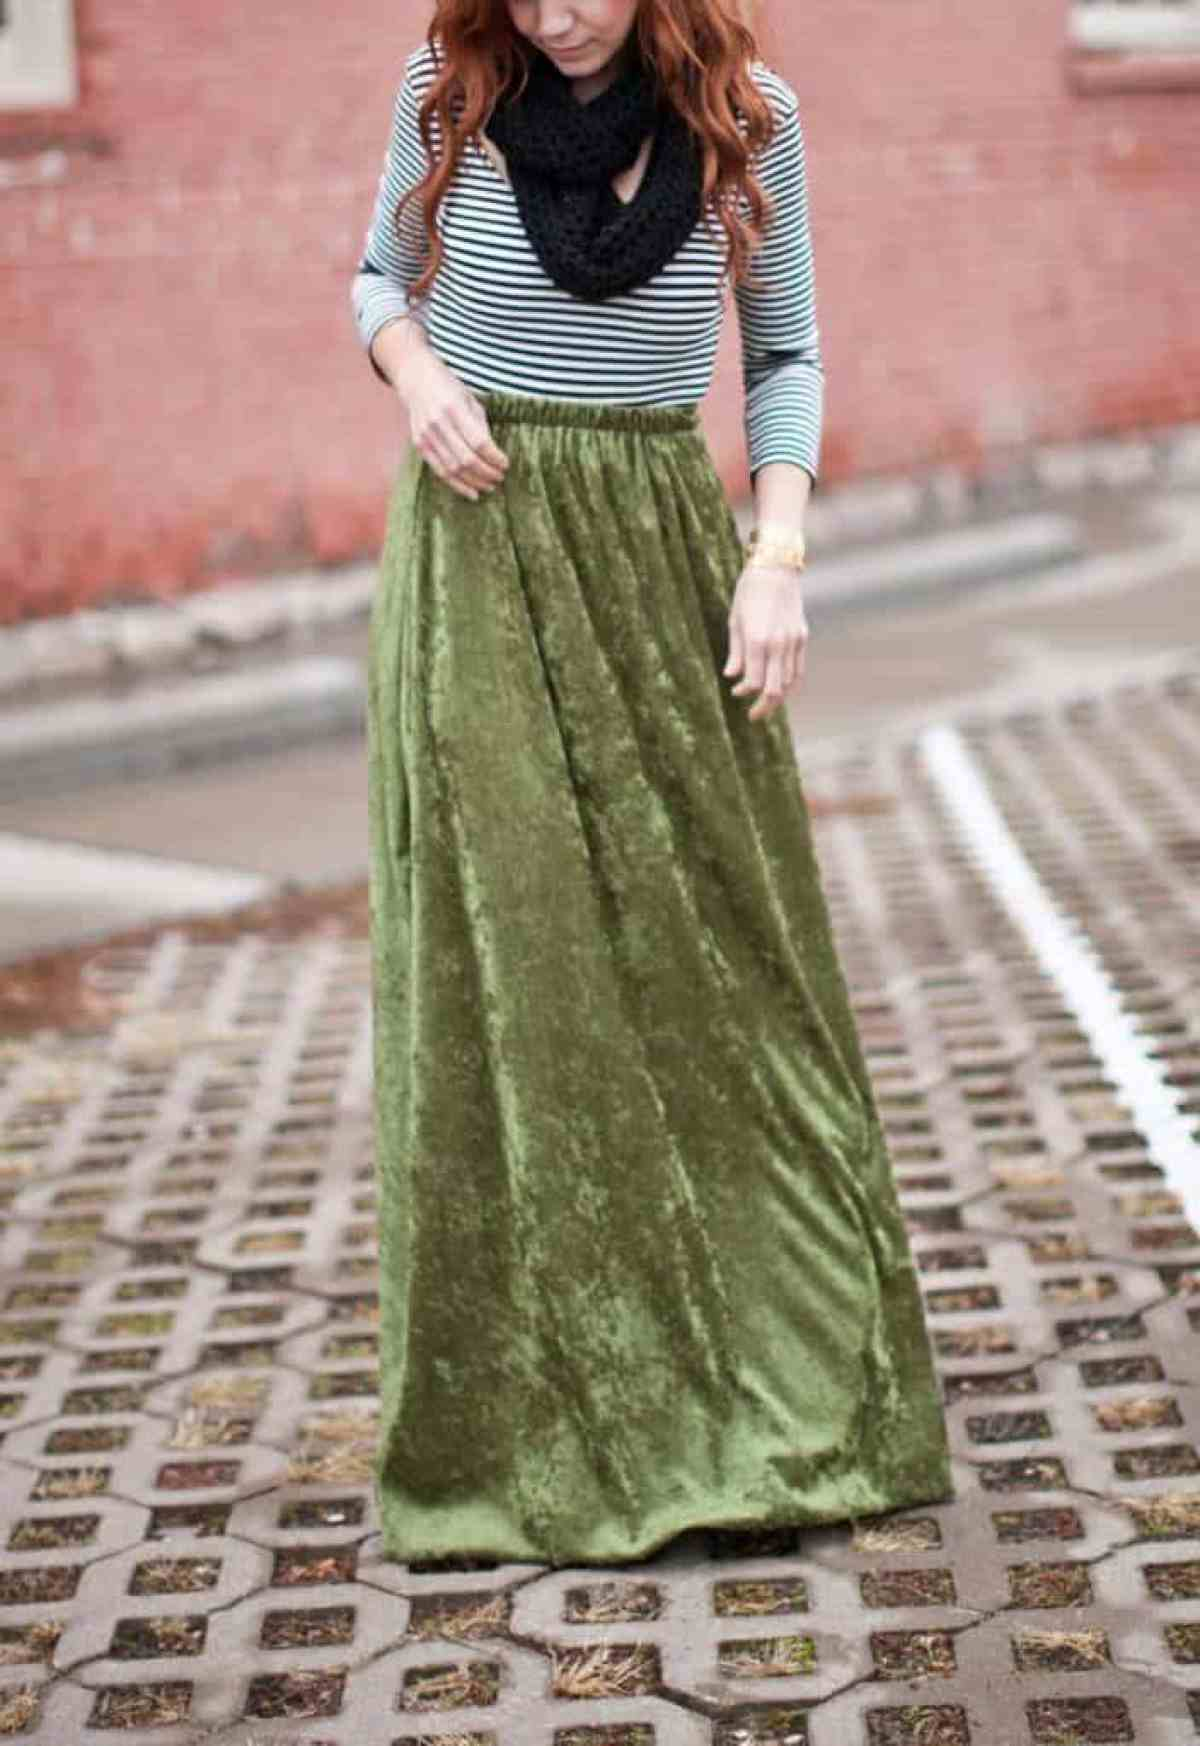 10 Free DIY Skirt Sewing Patterns - Wedding Guest Friendly Skirts! - How to Sew a Maxi Skirt (With An Elastic Waist) - from A Beautiful Mess